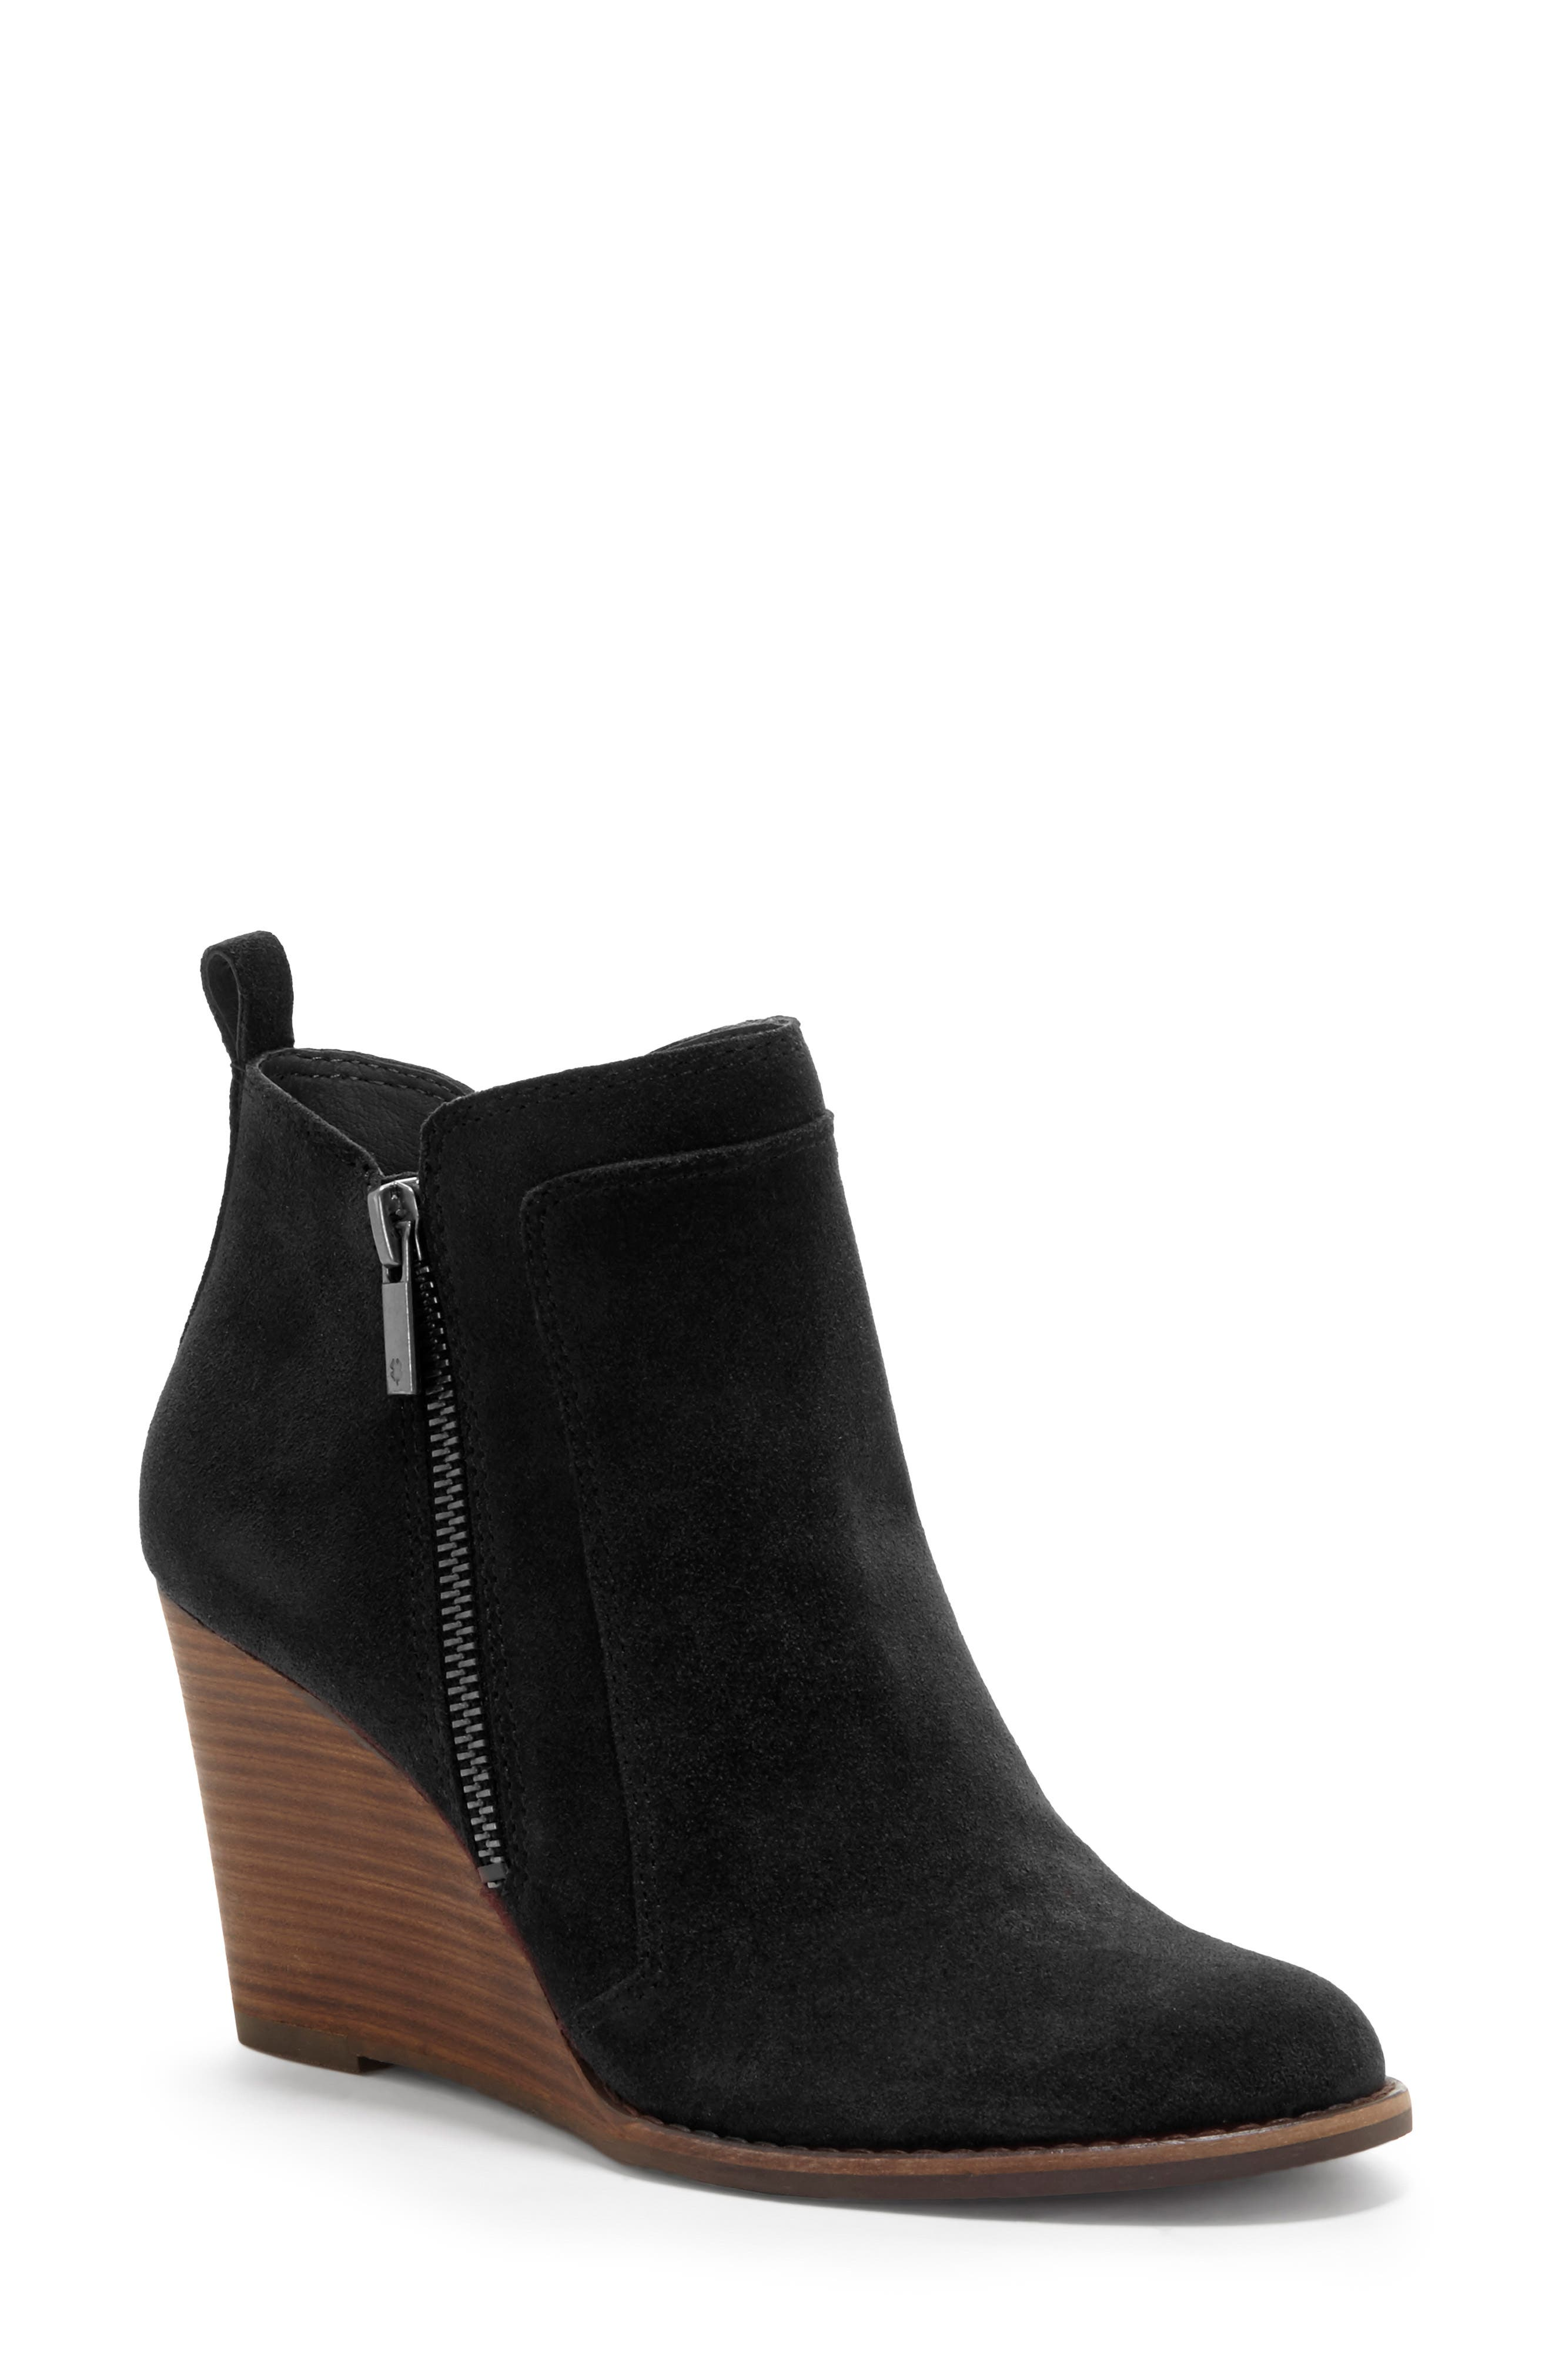 LUCKY BRAND, Yahir Wedge Bootie, Main thumbnail 1, color, BLACK SUEDE